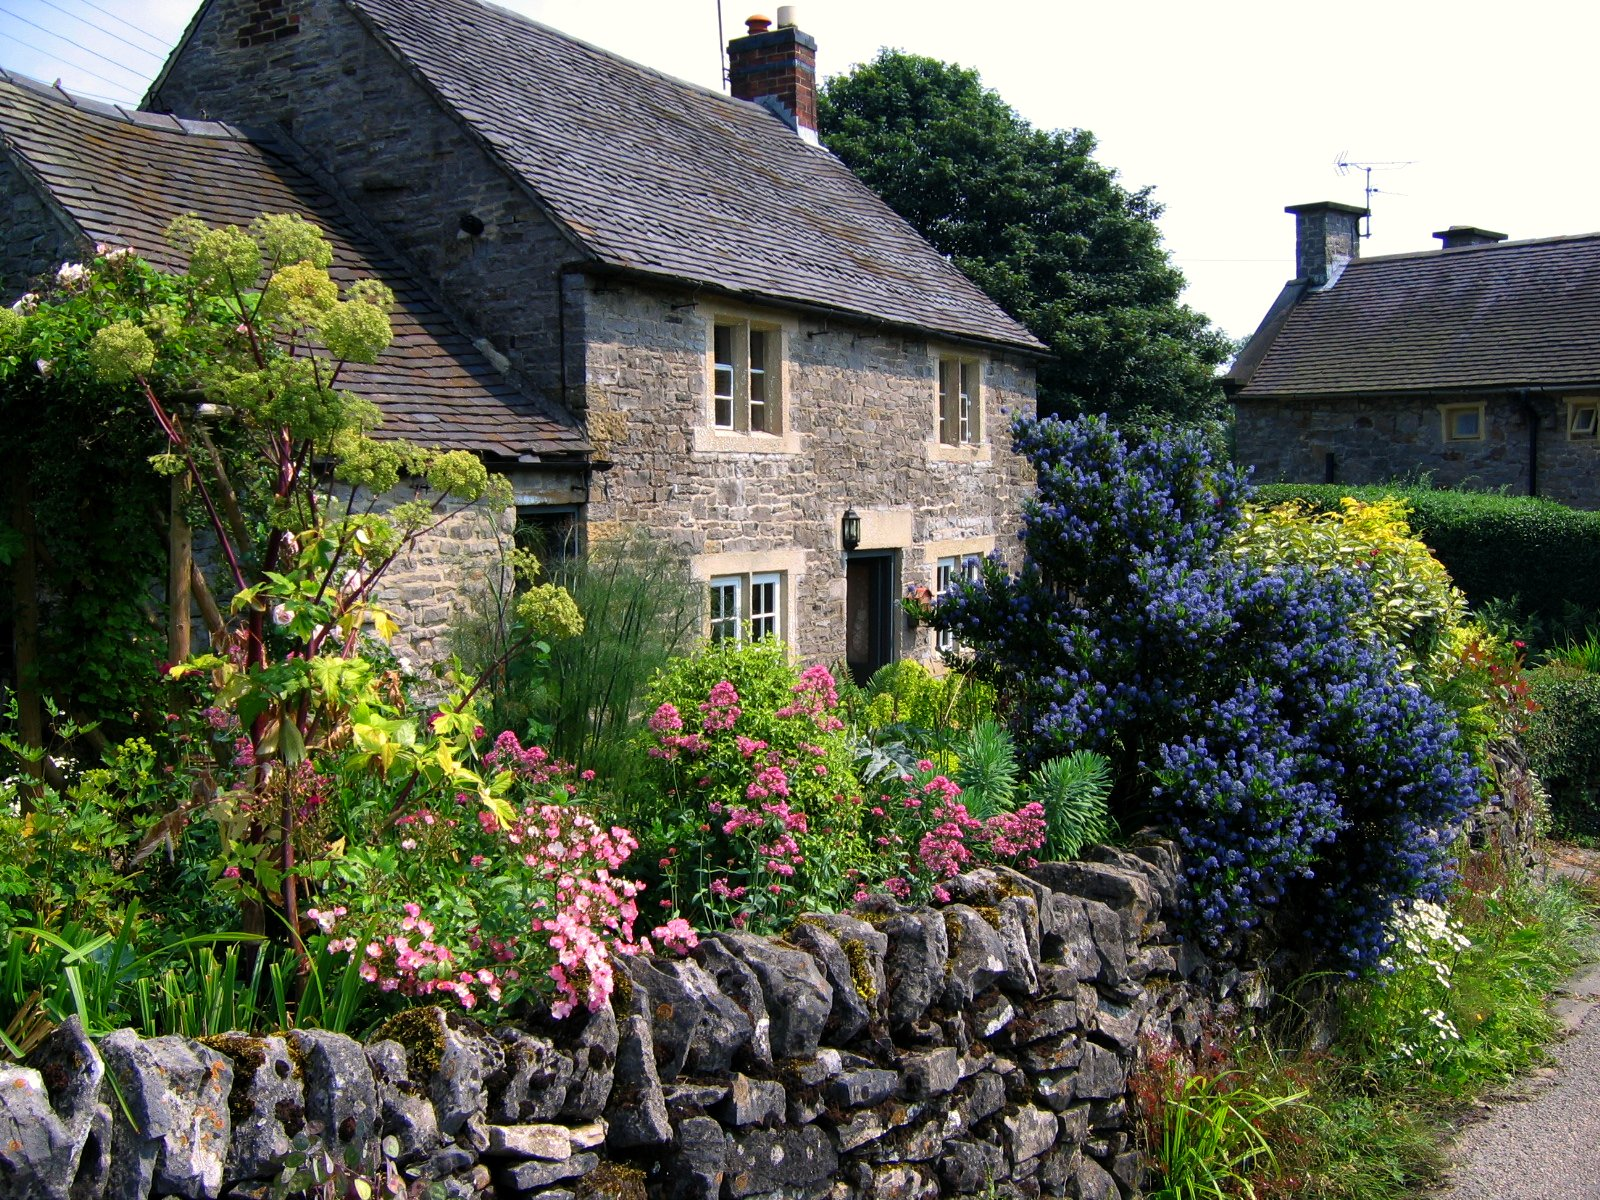 Home garden information center cottages anglais for Photos cottages anglais